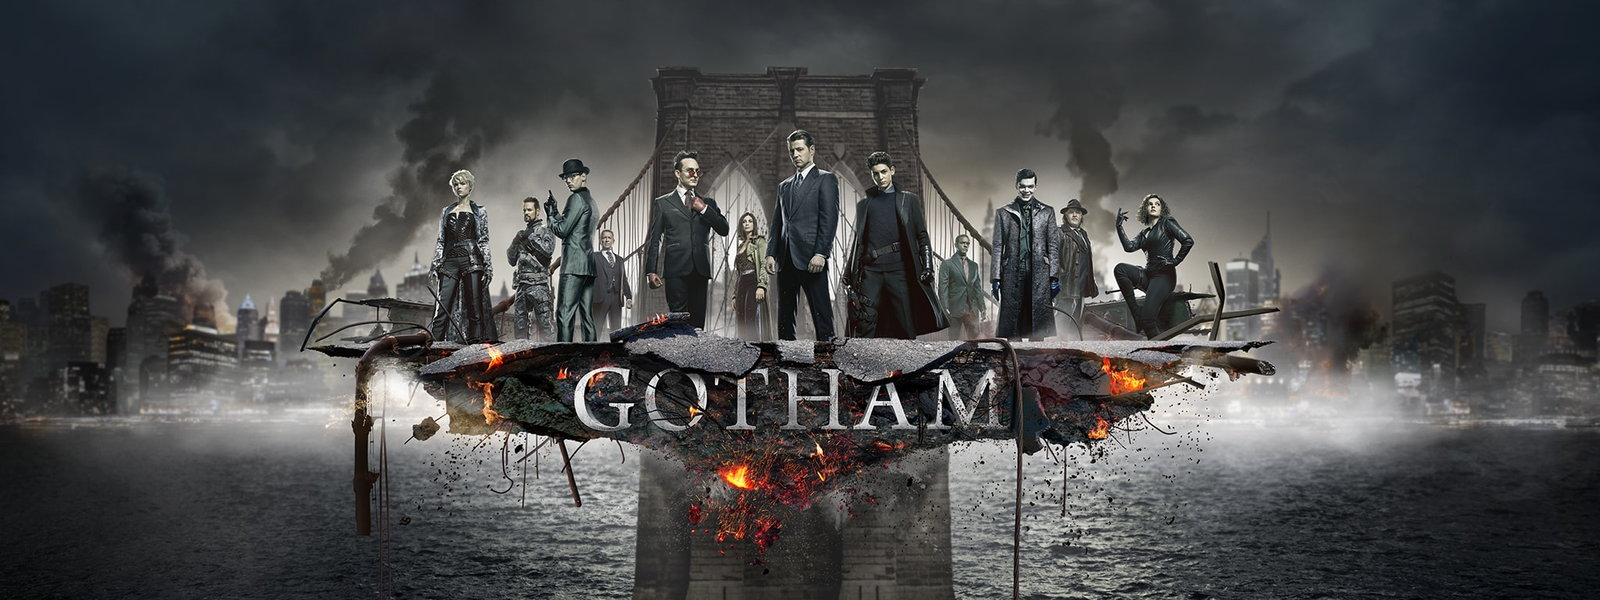 Watch Gotham Online | Stream on Hulu